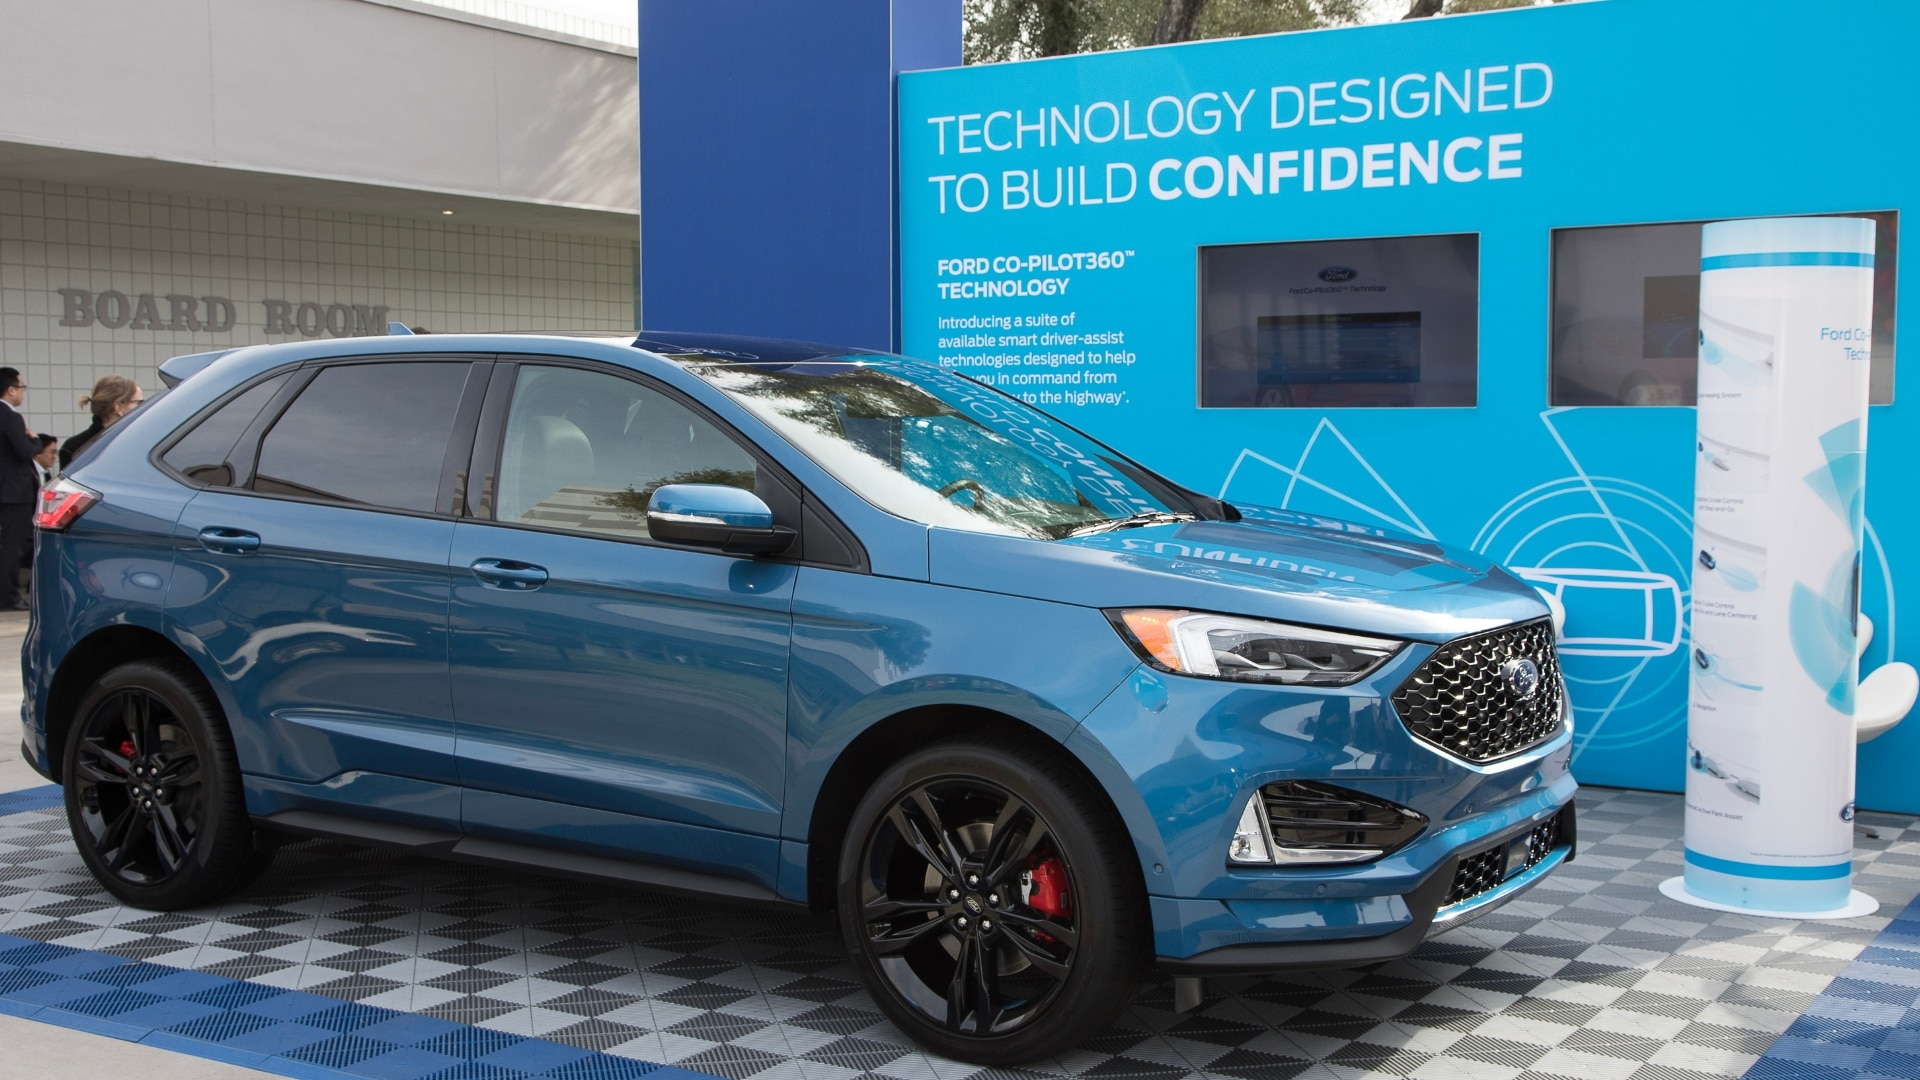 ford-ces-2019-booth